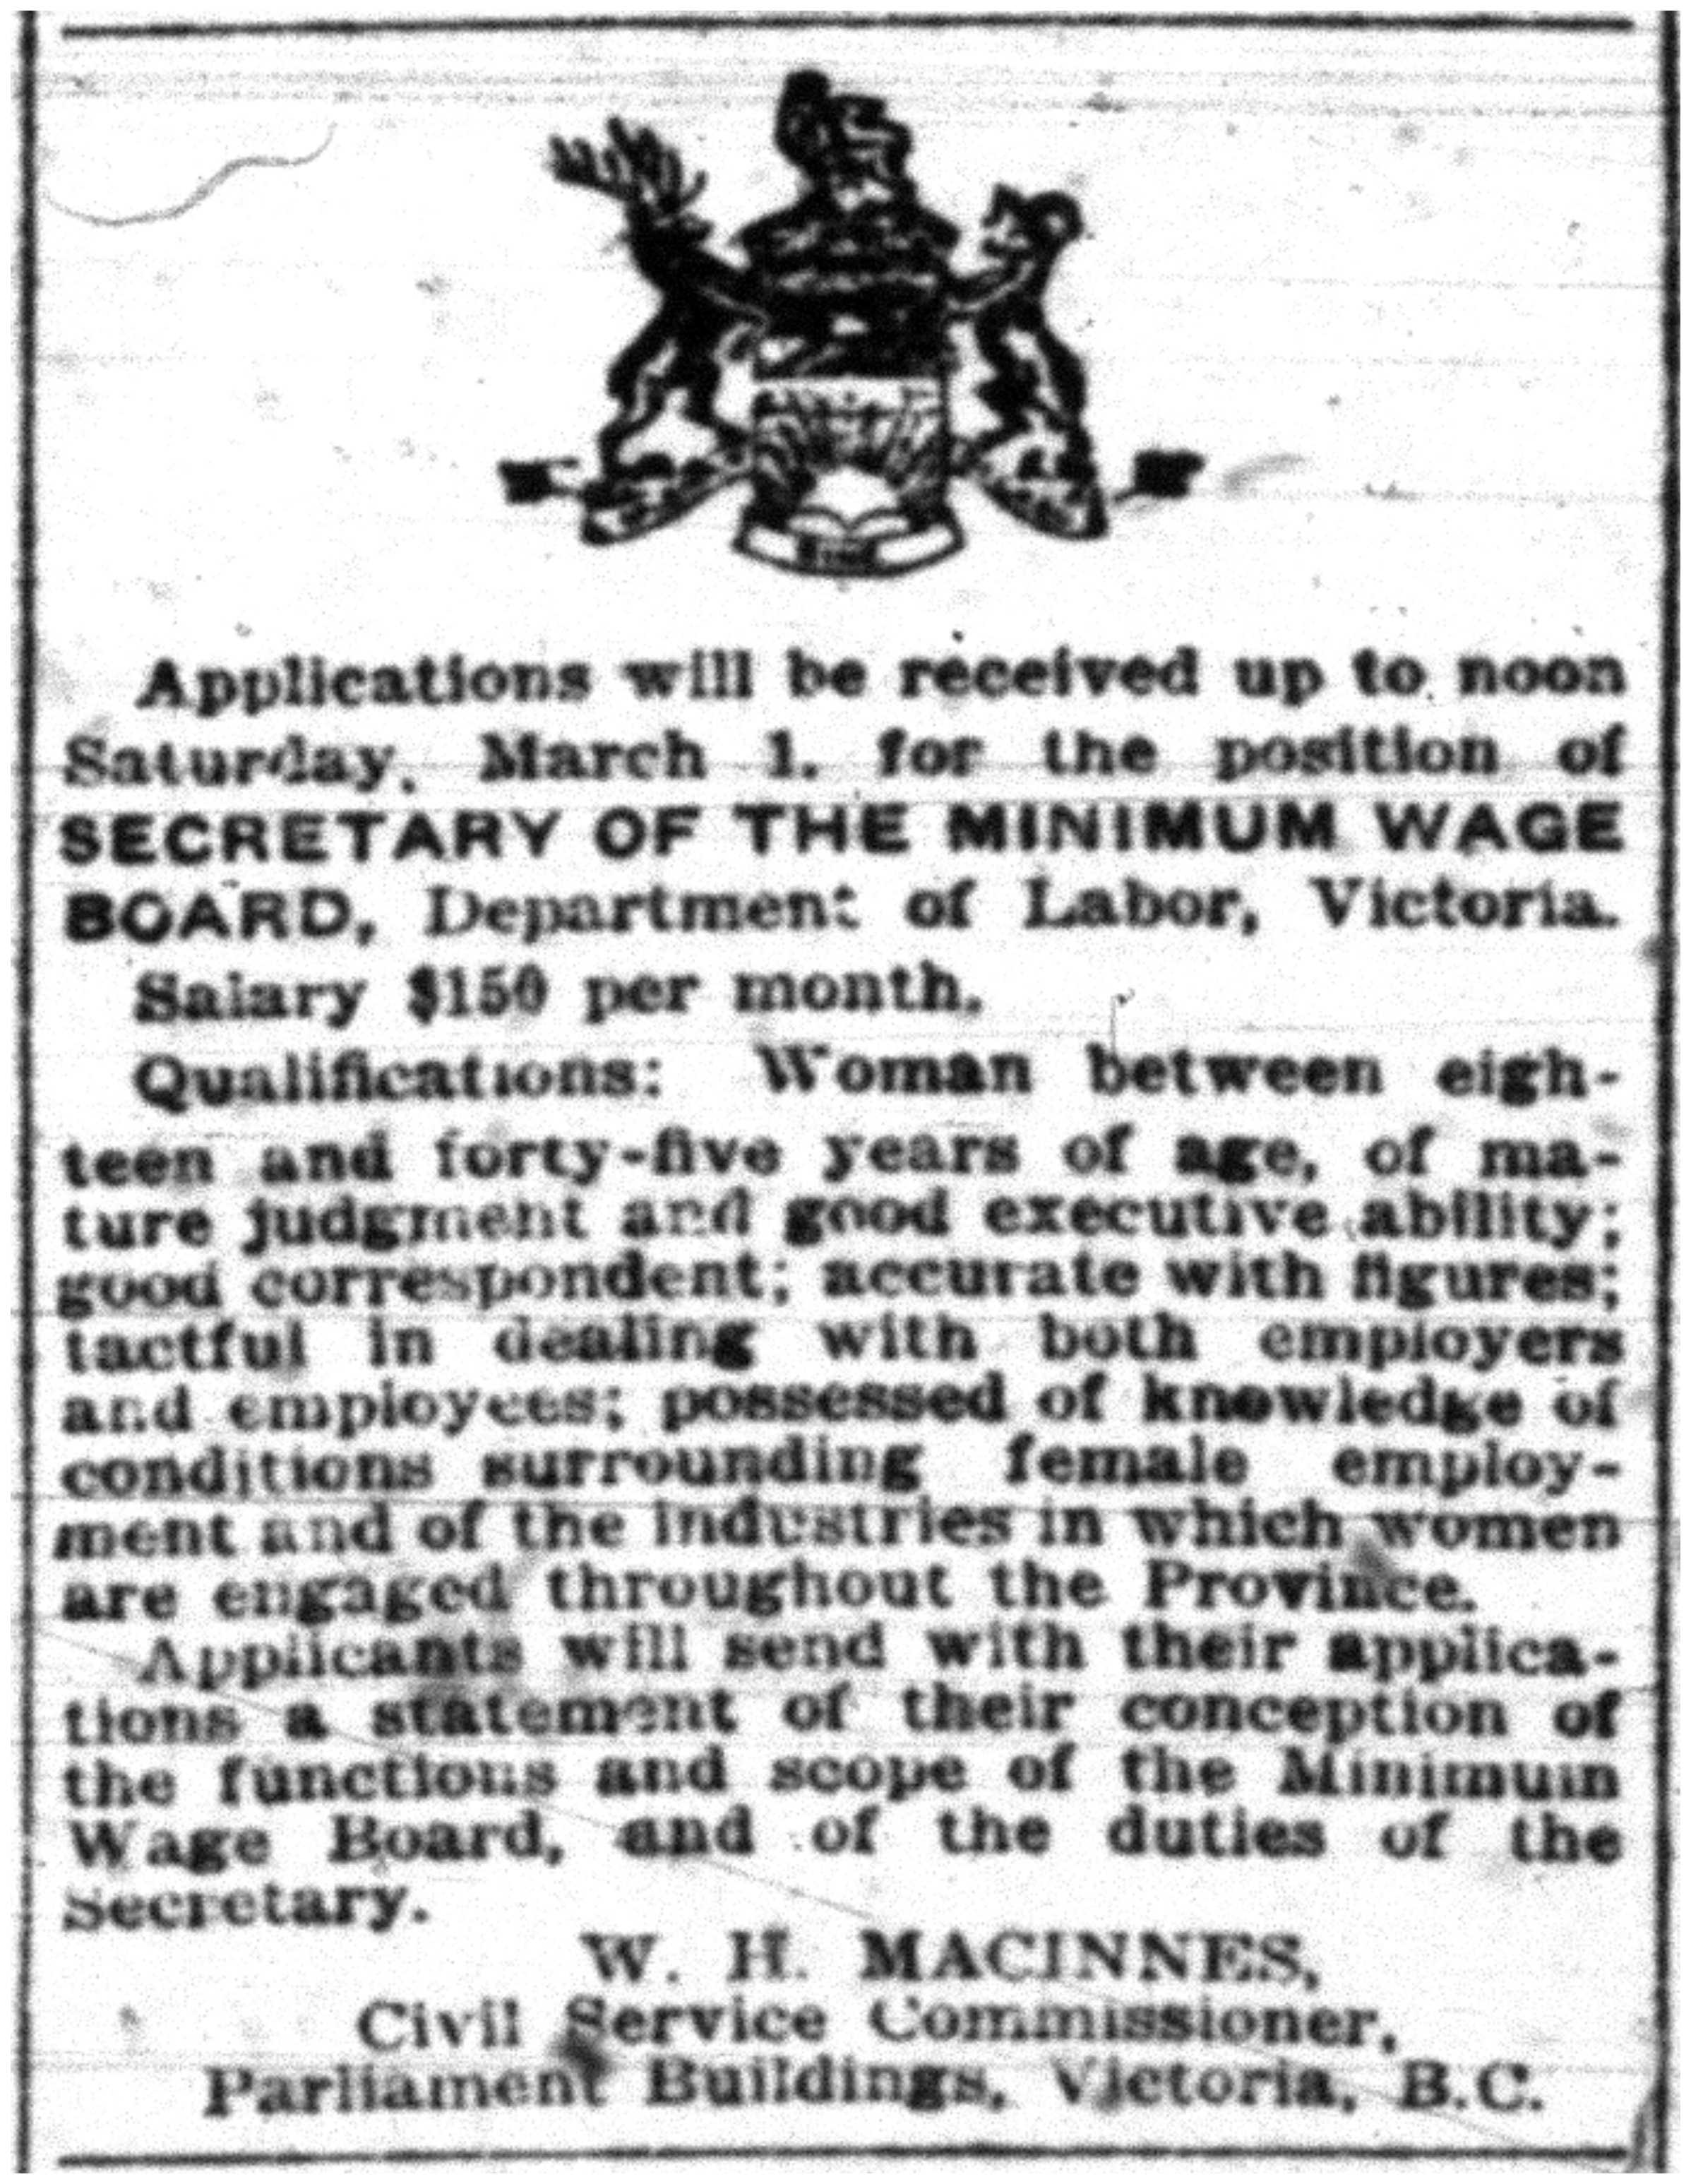 Advertisement for Secretarial Position with the Minimum Wage Board